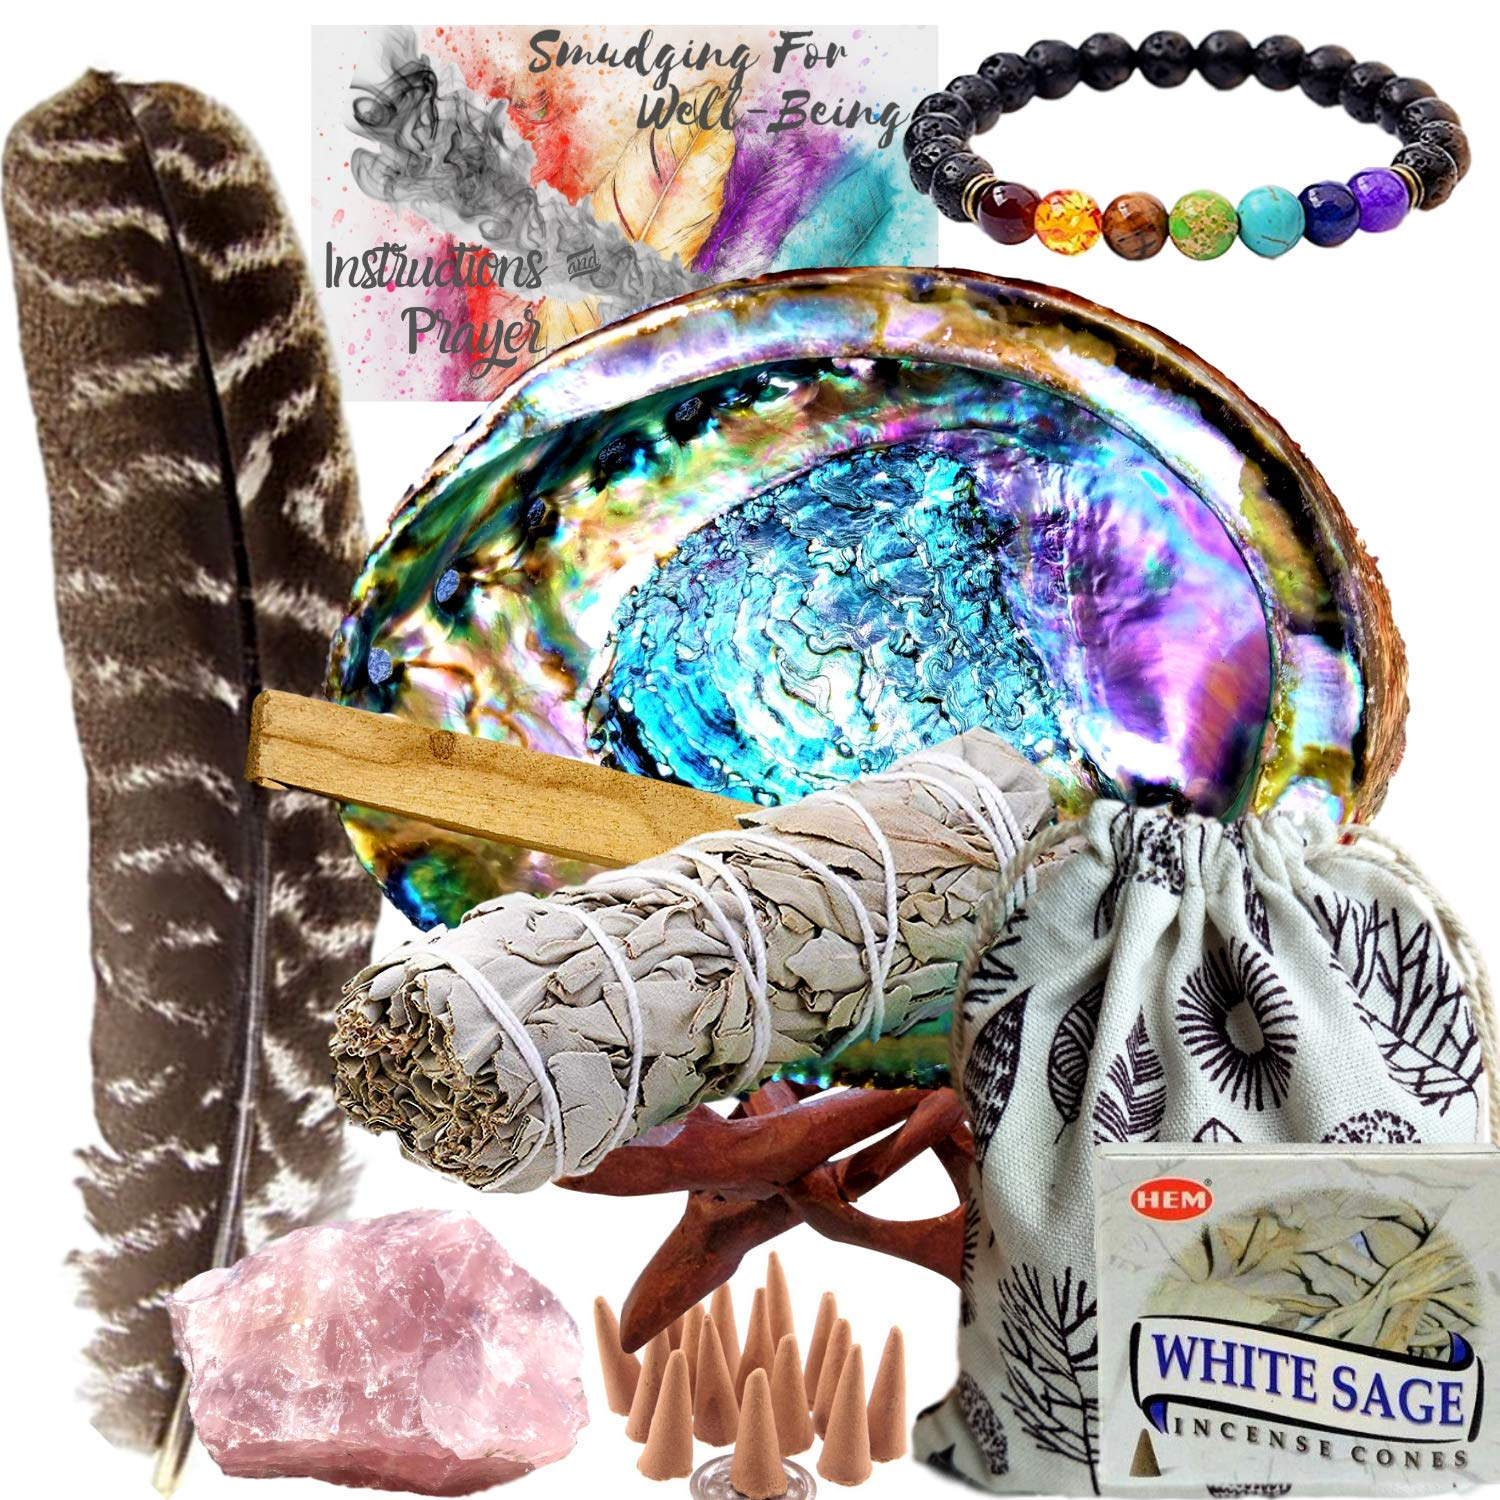 Smudge Kit Spiritual Set, Large Abalone Shell, Complete Sage Smudge Stick Kit, Palo Santo, White Sage Incense for Cleansing, Smudge Feather,Chakra Kit Bracelet, Charitable Positive Vibes Smudging Kit by Worldly Finds